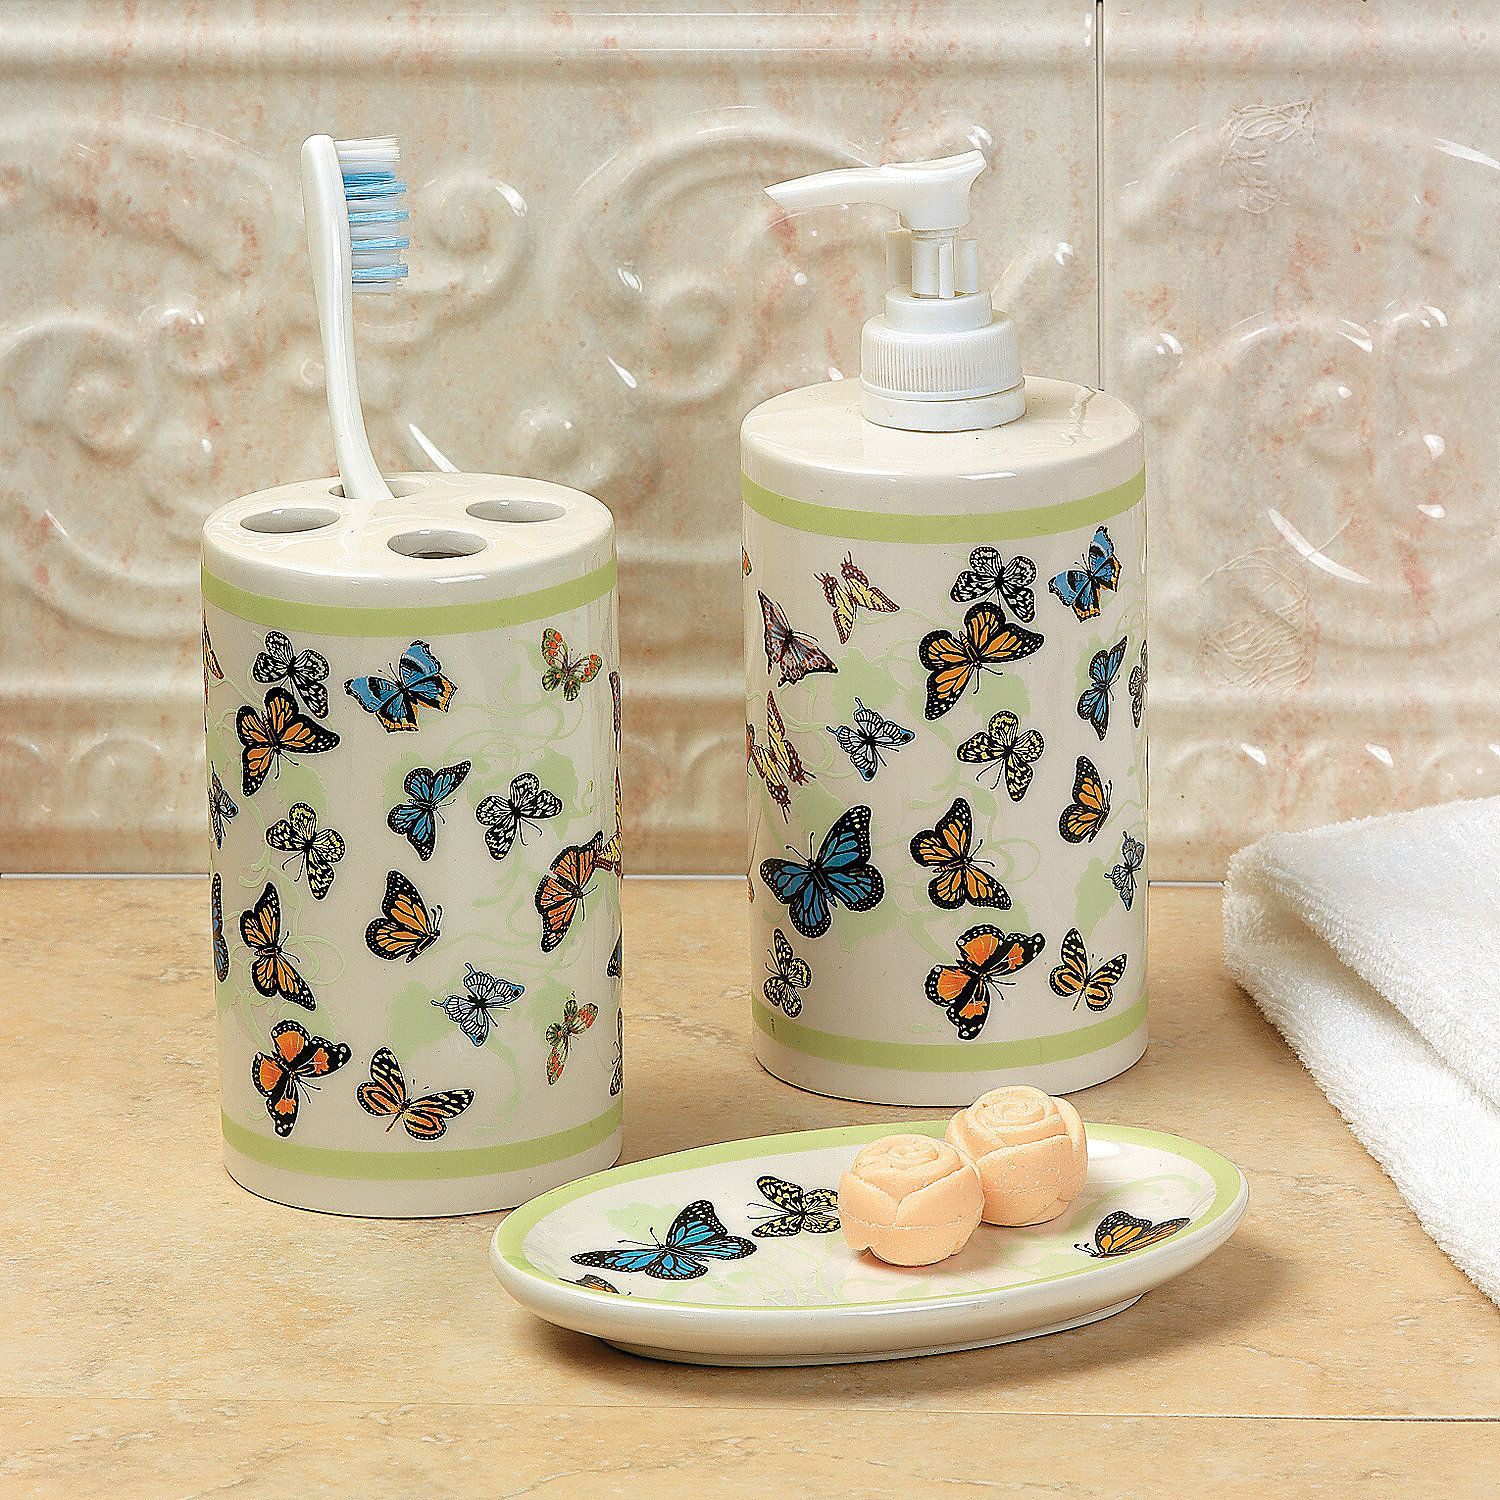 Butterfly bathroom accessories orientaltrading for the home